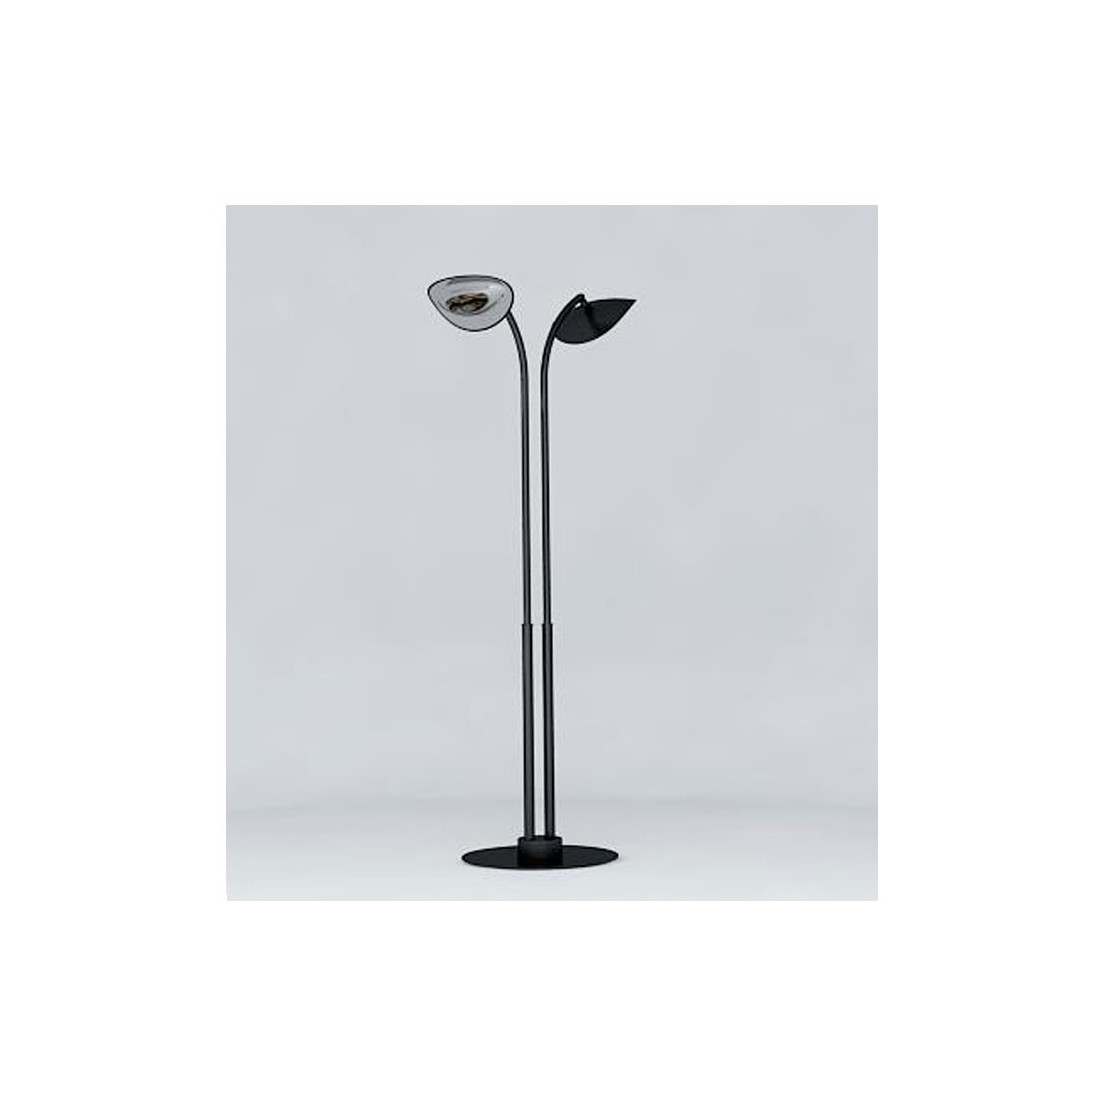 Lampe Exterieur Infrarouge Lampe Chauffante Infrarouge Hotdoor Lampadaire Simple